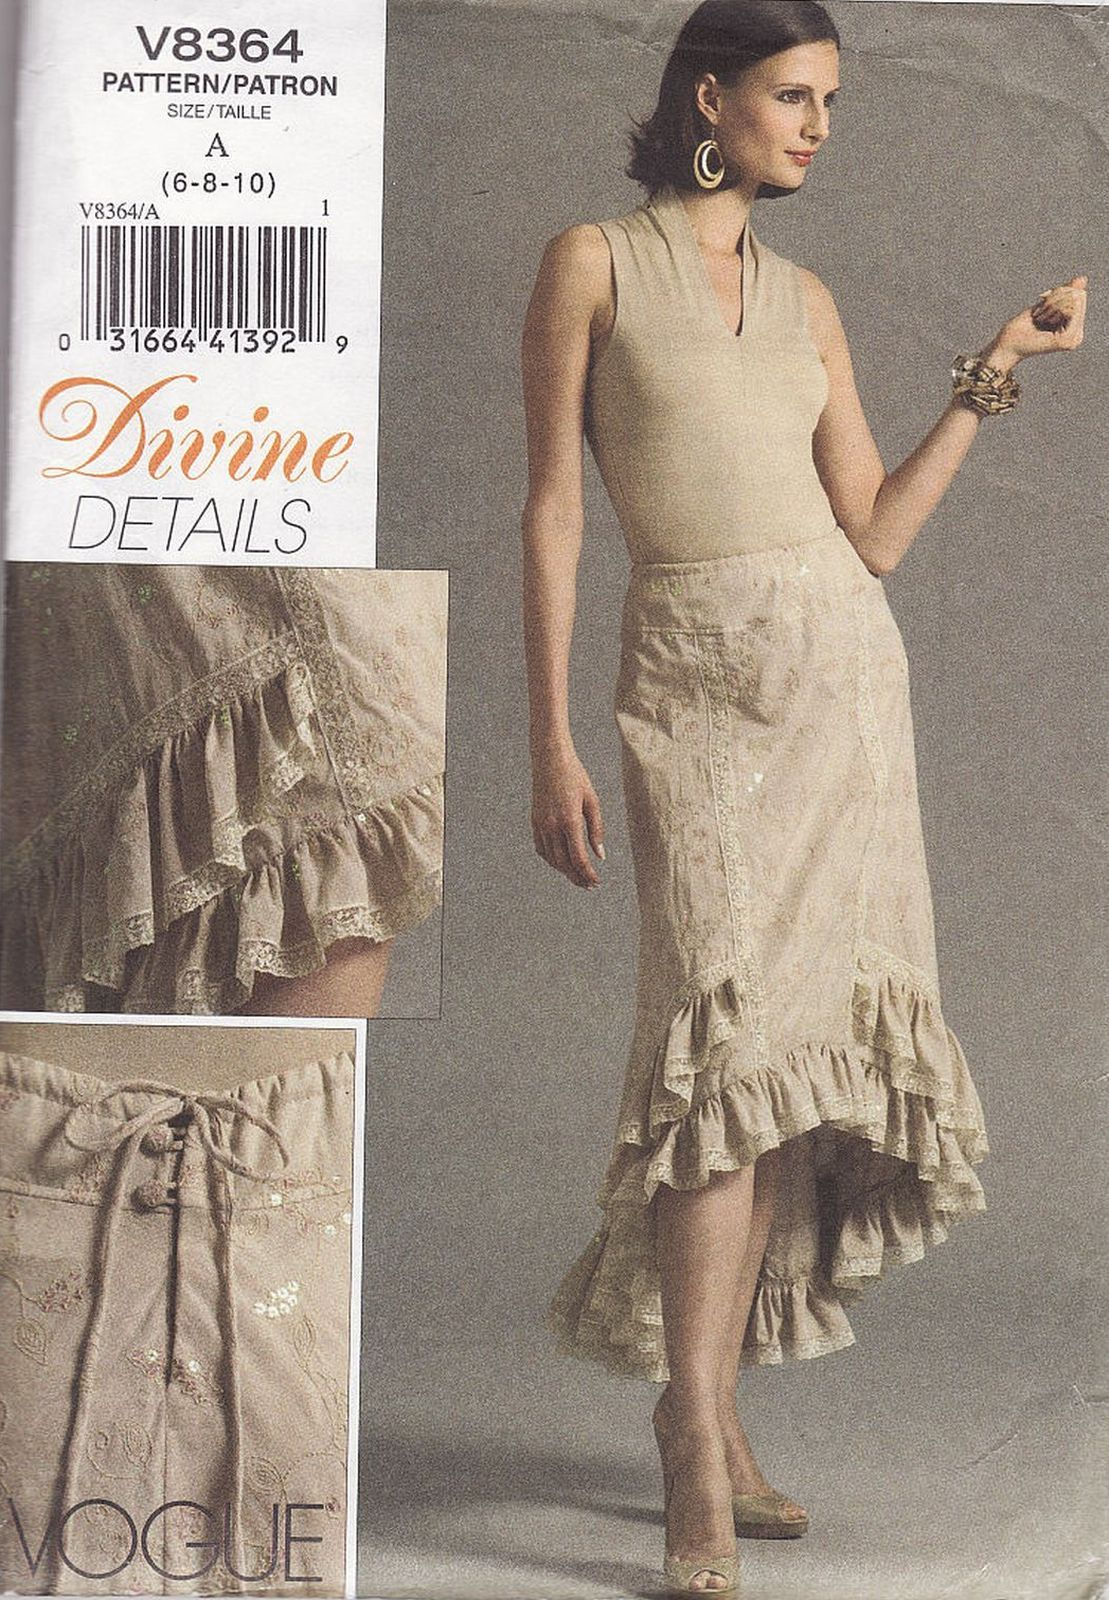 Primary image for Misses Vogue Ruffled Graduated Flared Hem Party Skirt Sew Pattern 6-10